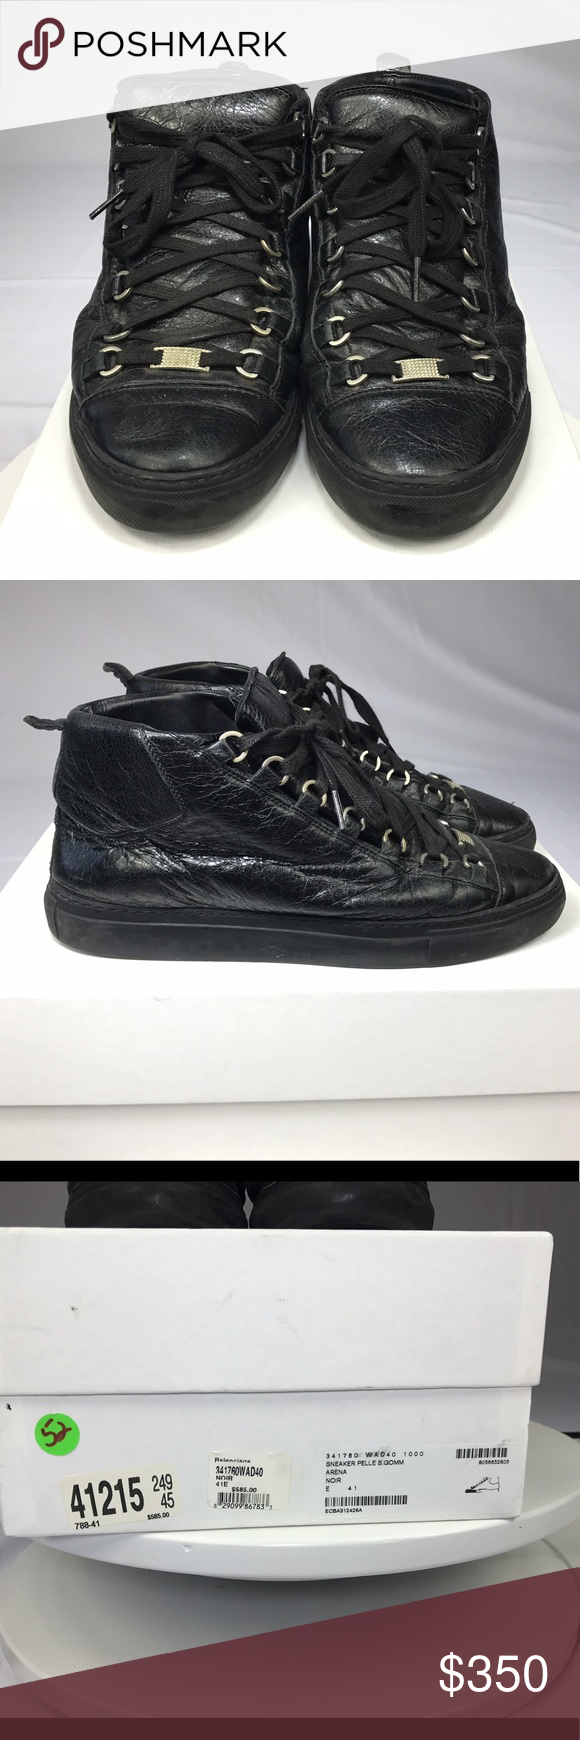 cb90ac281a376 Balenciaga Arena Sneakers (Black) Size 41 Black Balenciaga Arena Sneakers.  Size 41. My US men s shoe size is 9. These shoes are used but still in  great ...